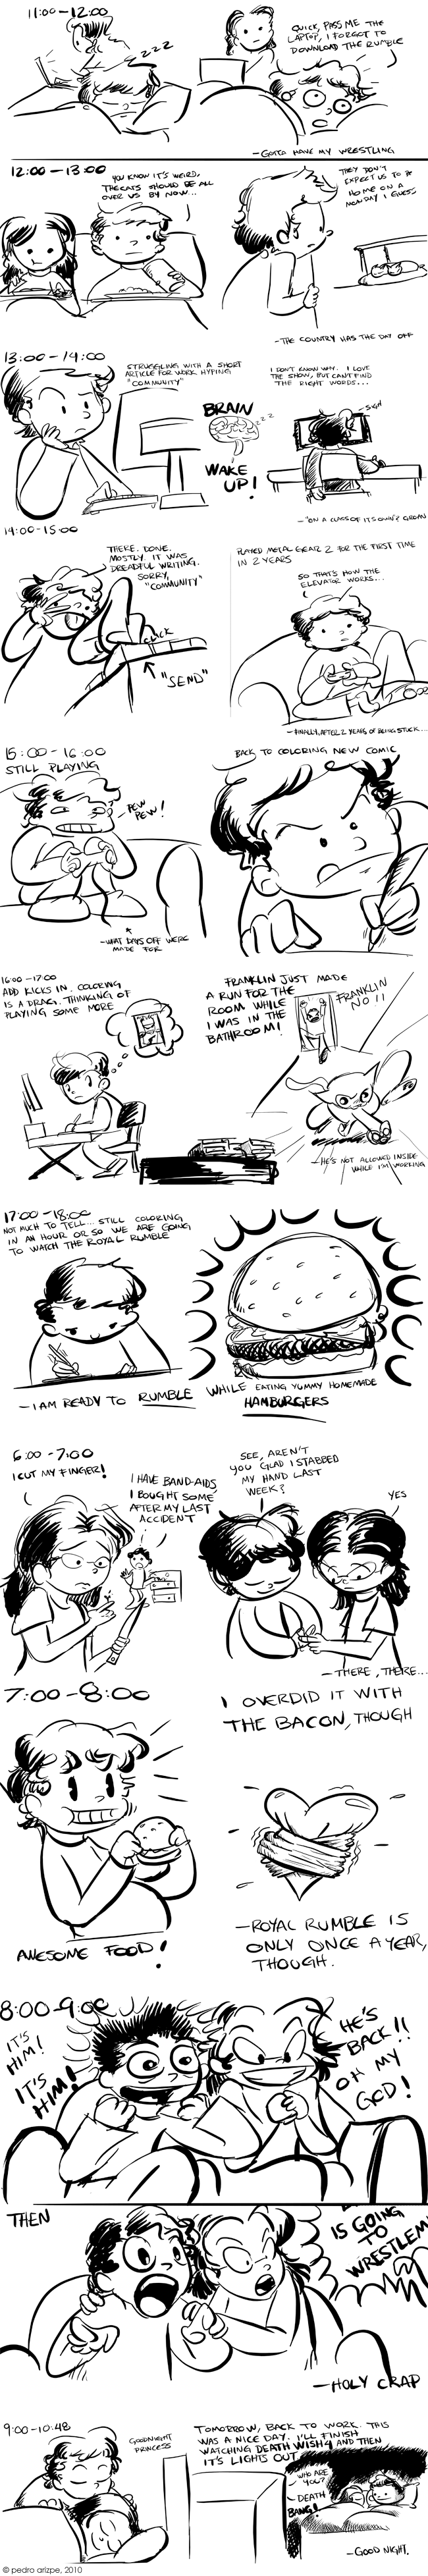 Hourly Comic Day 2010